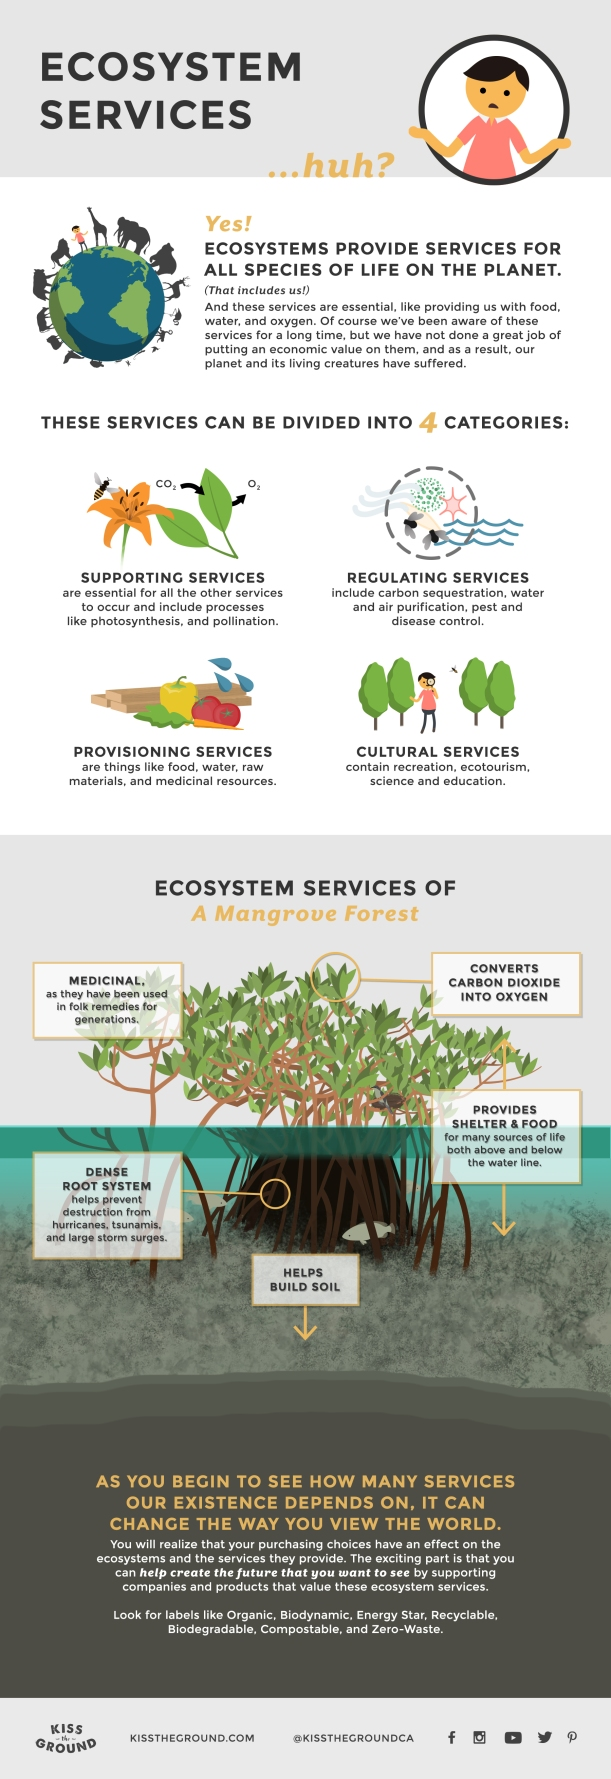 ecosystemservices